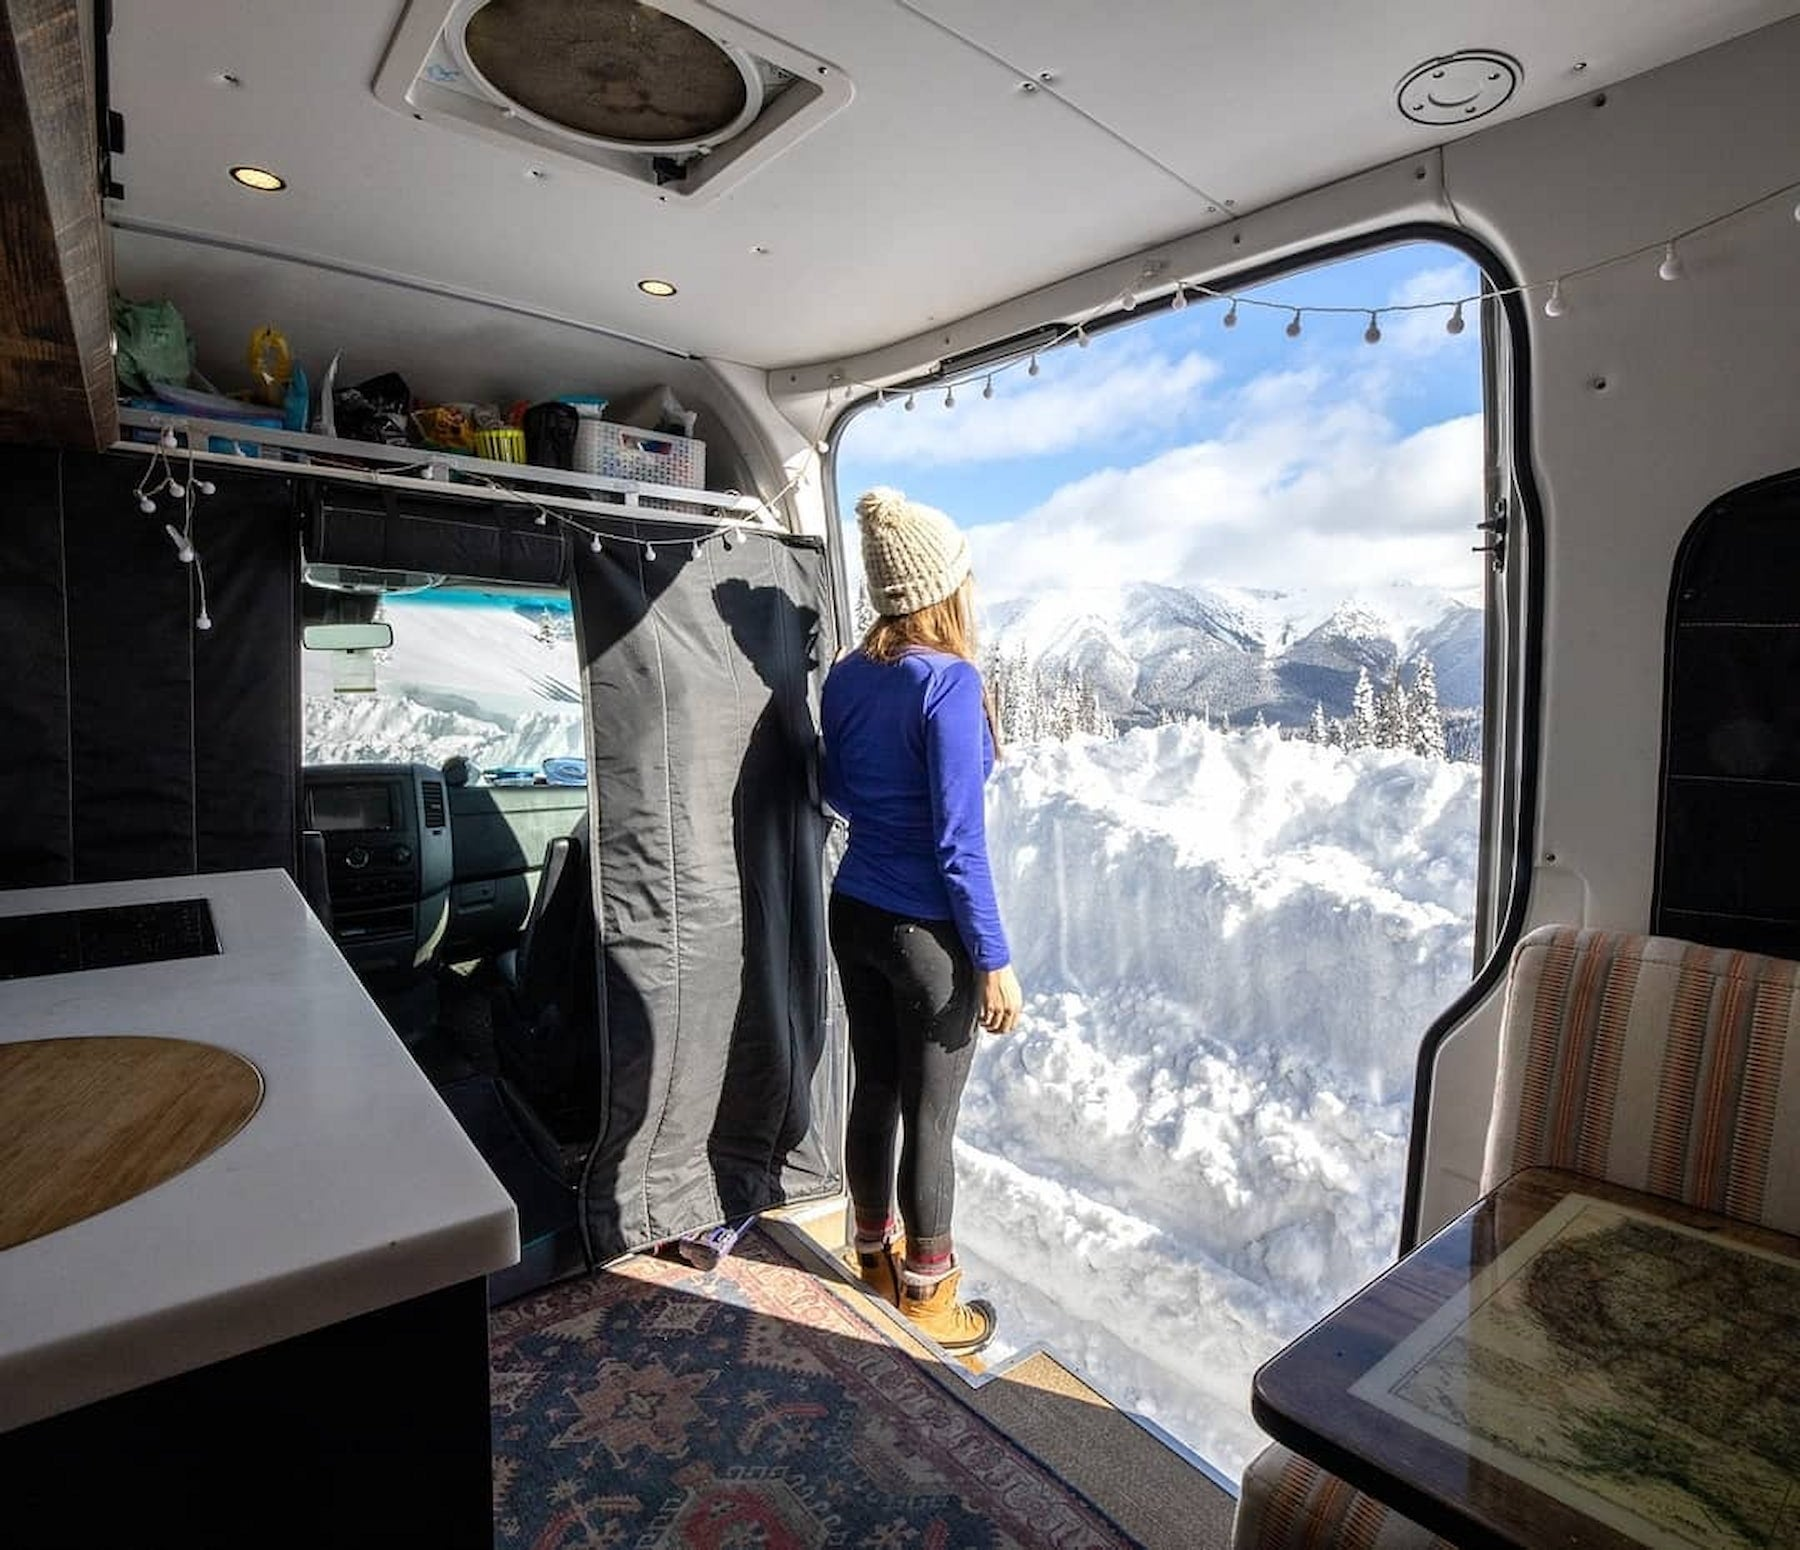 Kristin standing in the doorway of her van looking over the snow dusted mountains.